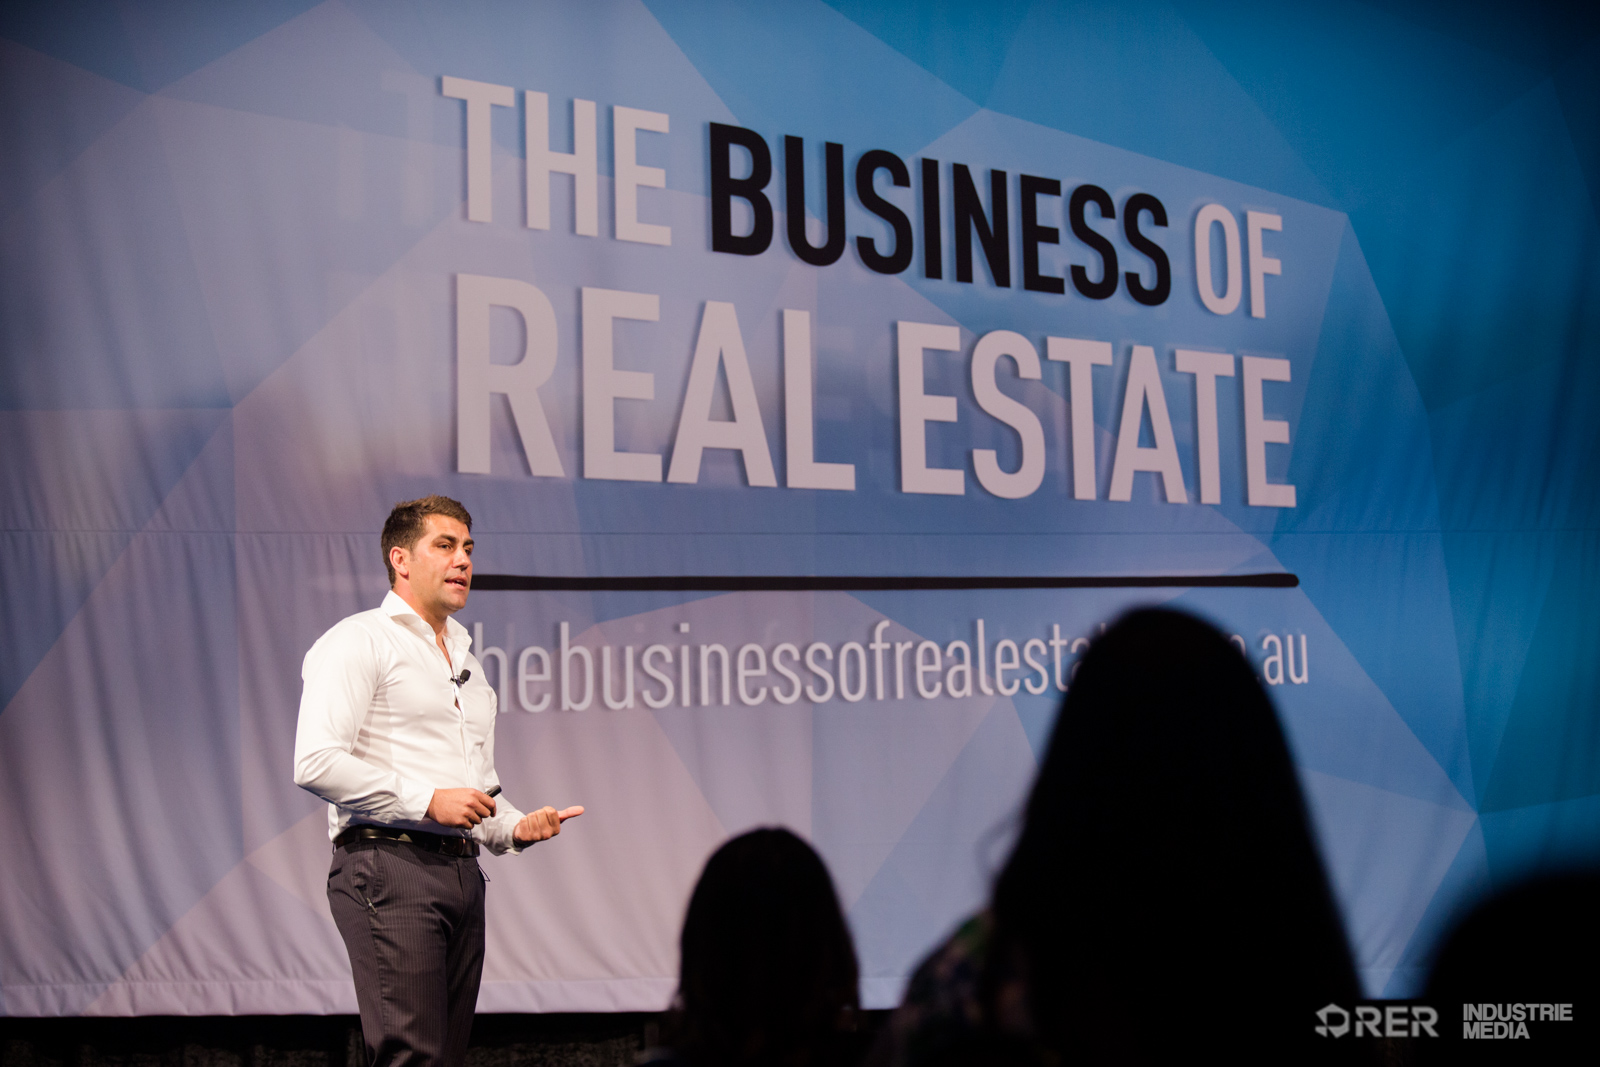 http://www.thebusinessofrealestate.com.au/wp-content/uploads/2016/09/RER_BUSINESS_OF_REAL_ESTATE-59.jpg